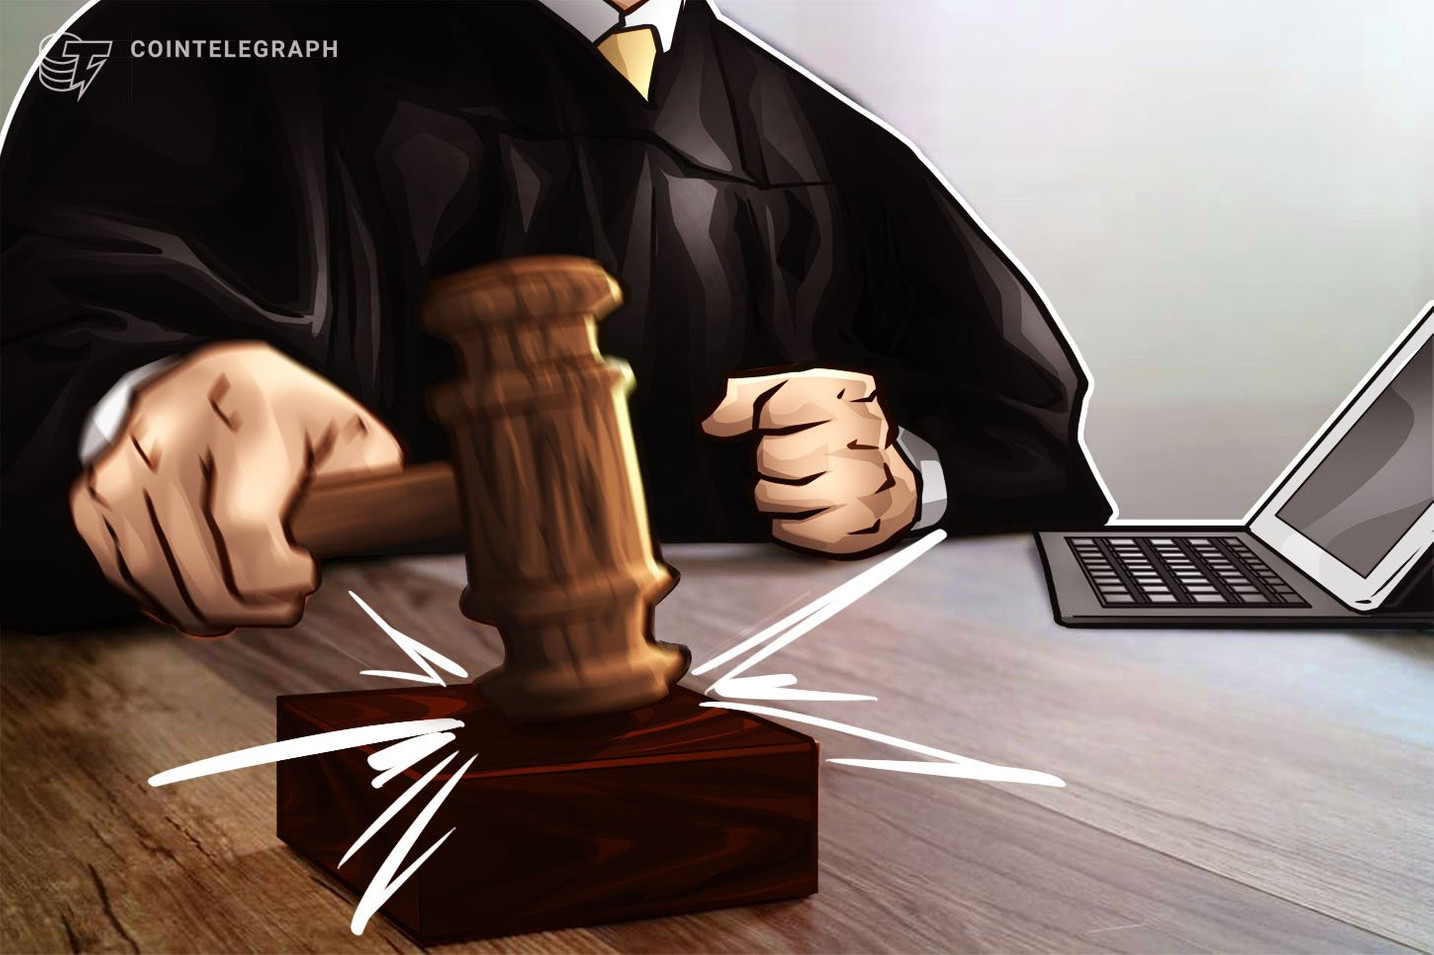 Chile: Anti-monopoly Court Rules to Keep Crypto Exchanges' Bank Accounts Open